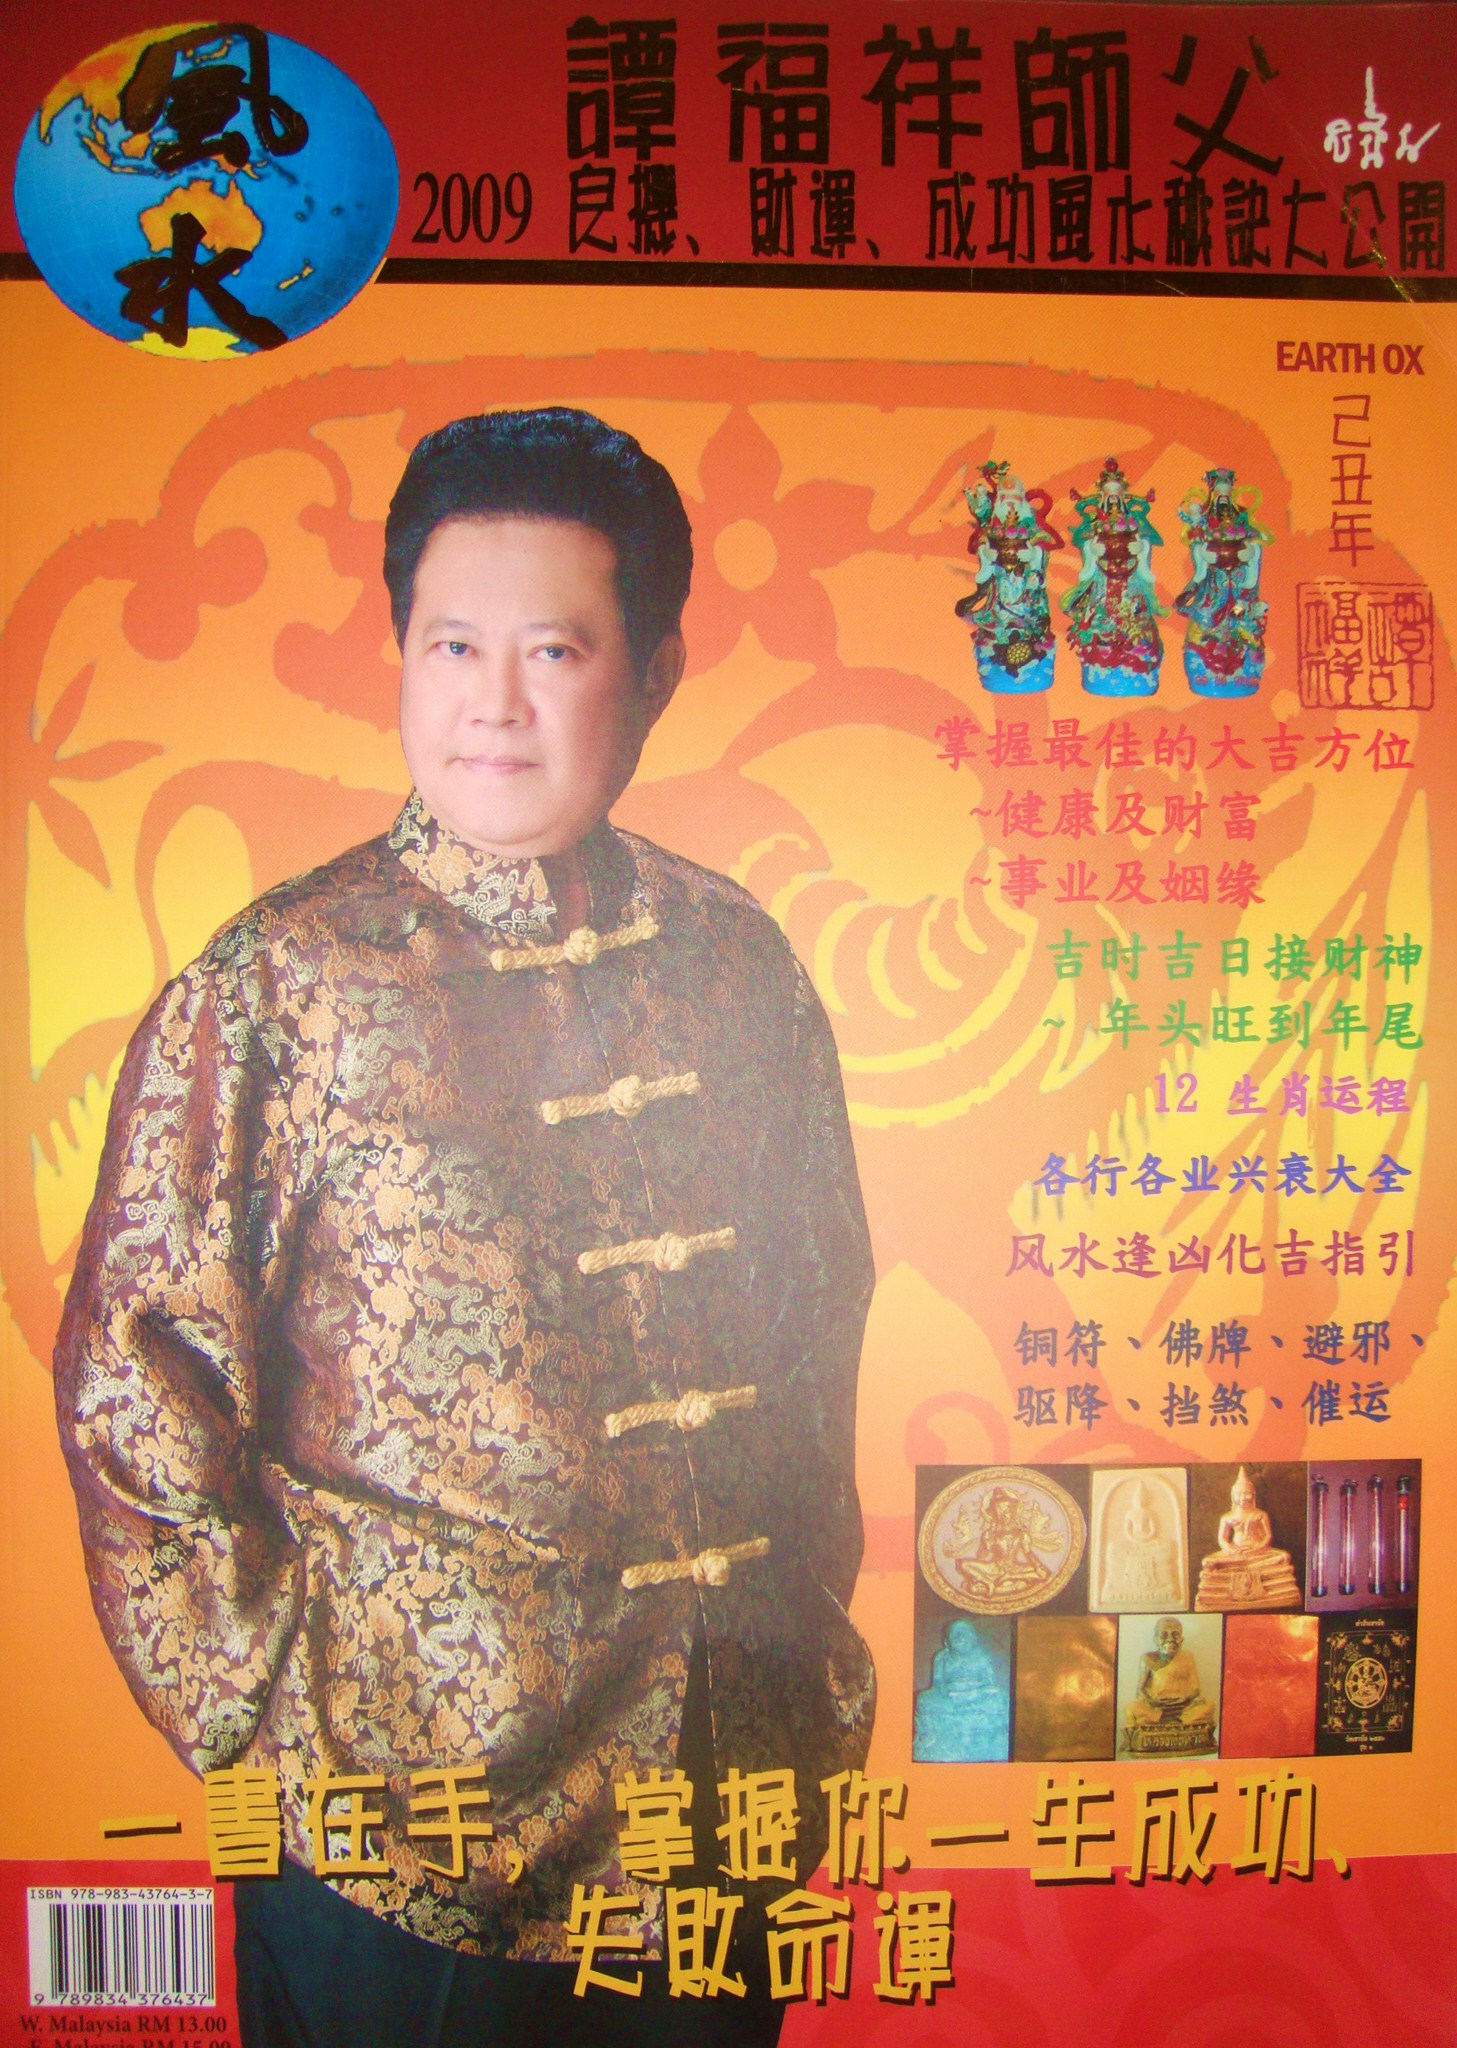 Feng Shui Master worldwide feng shui master stanley tham fook cheong about